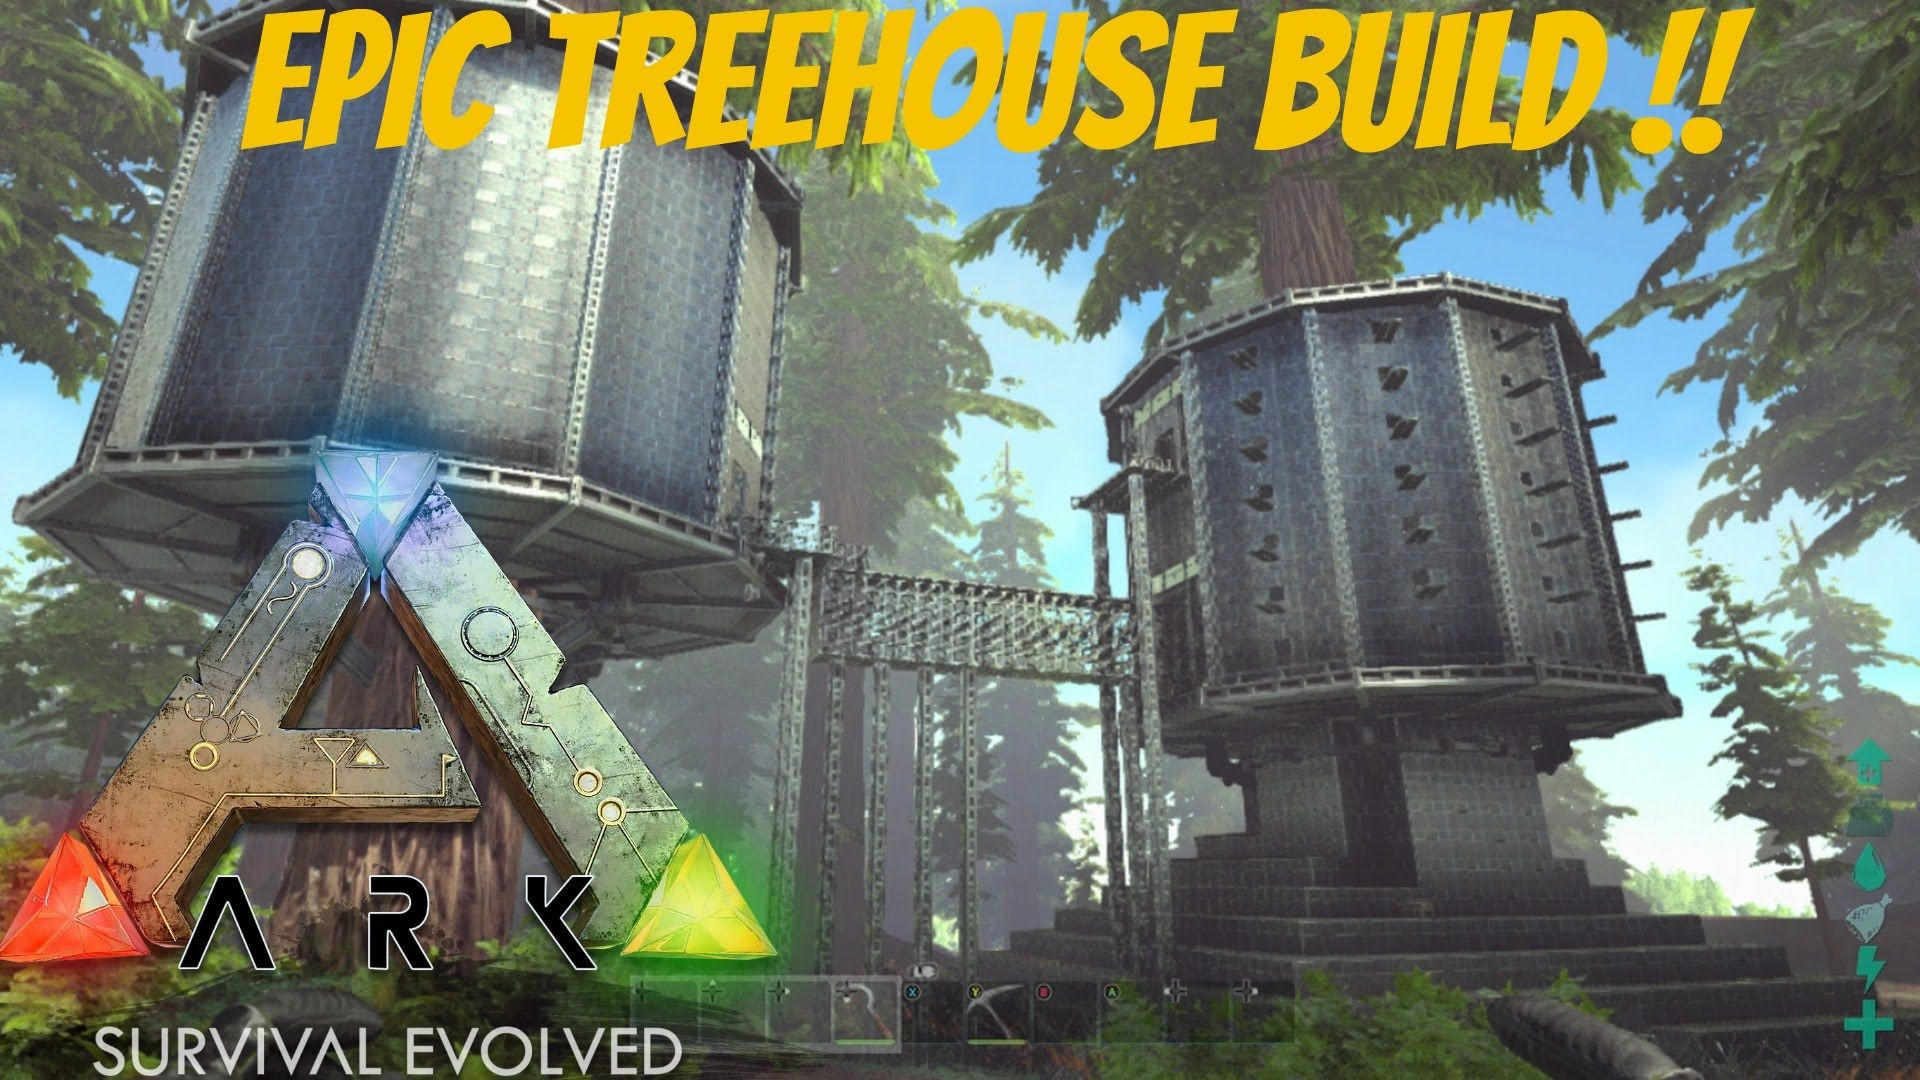 Good [ARK] EPIC TREEHOUSE FORT!